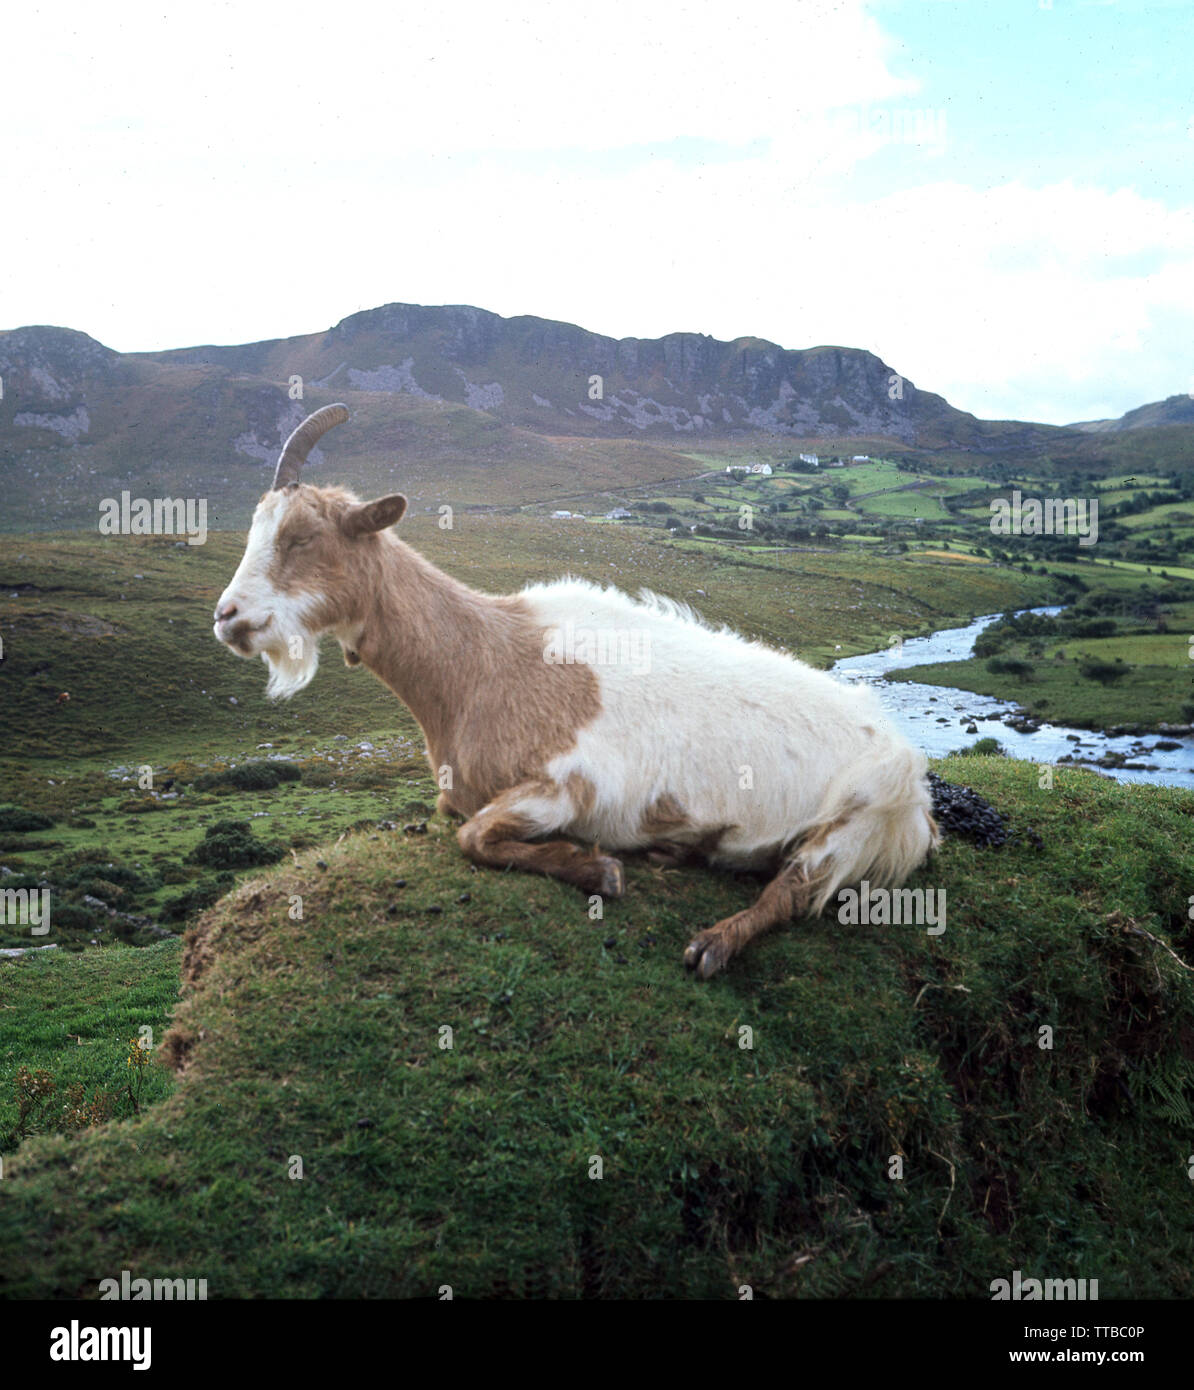 1960s, historical, a feral Irish goat with a lght brown and white coat sitting on a grass covered hump or rock in the green countryside in rural Kerry, Ireland. - Stock Image